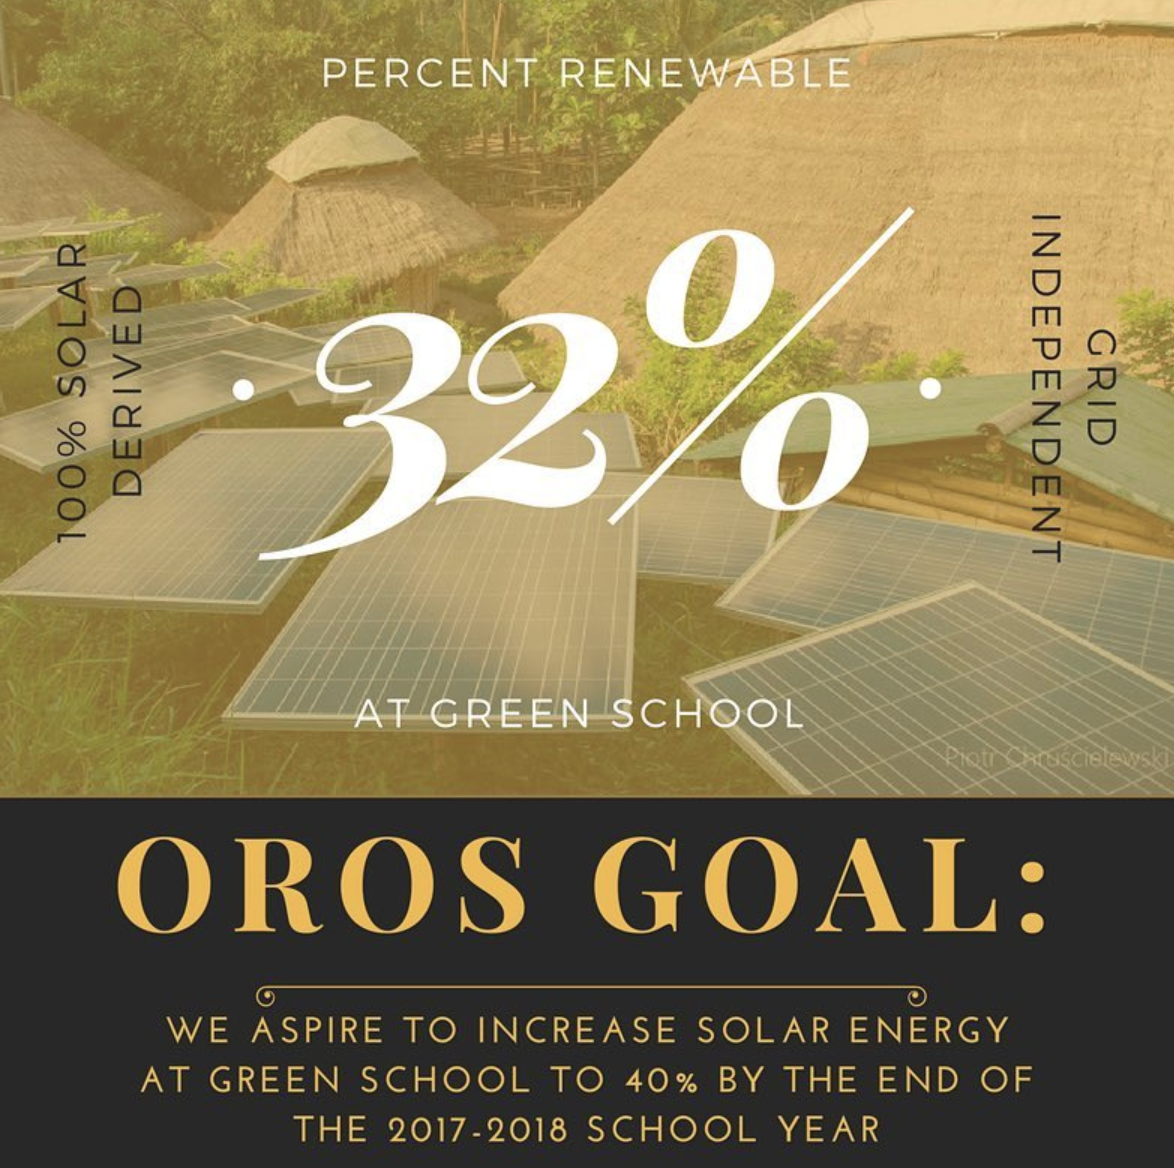 OROS Goal for Green School